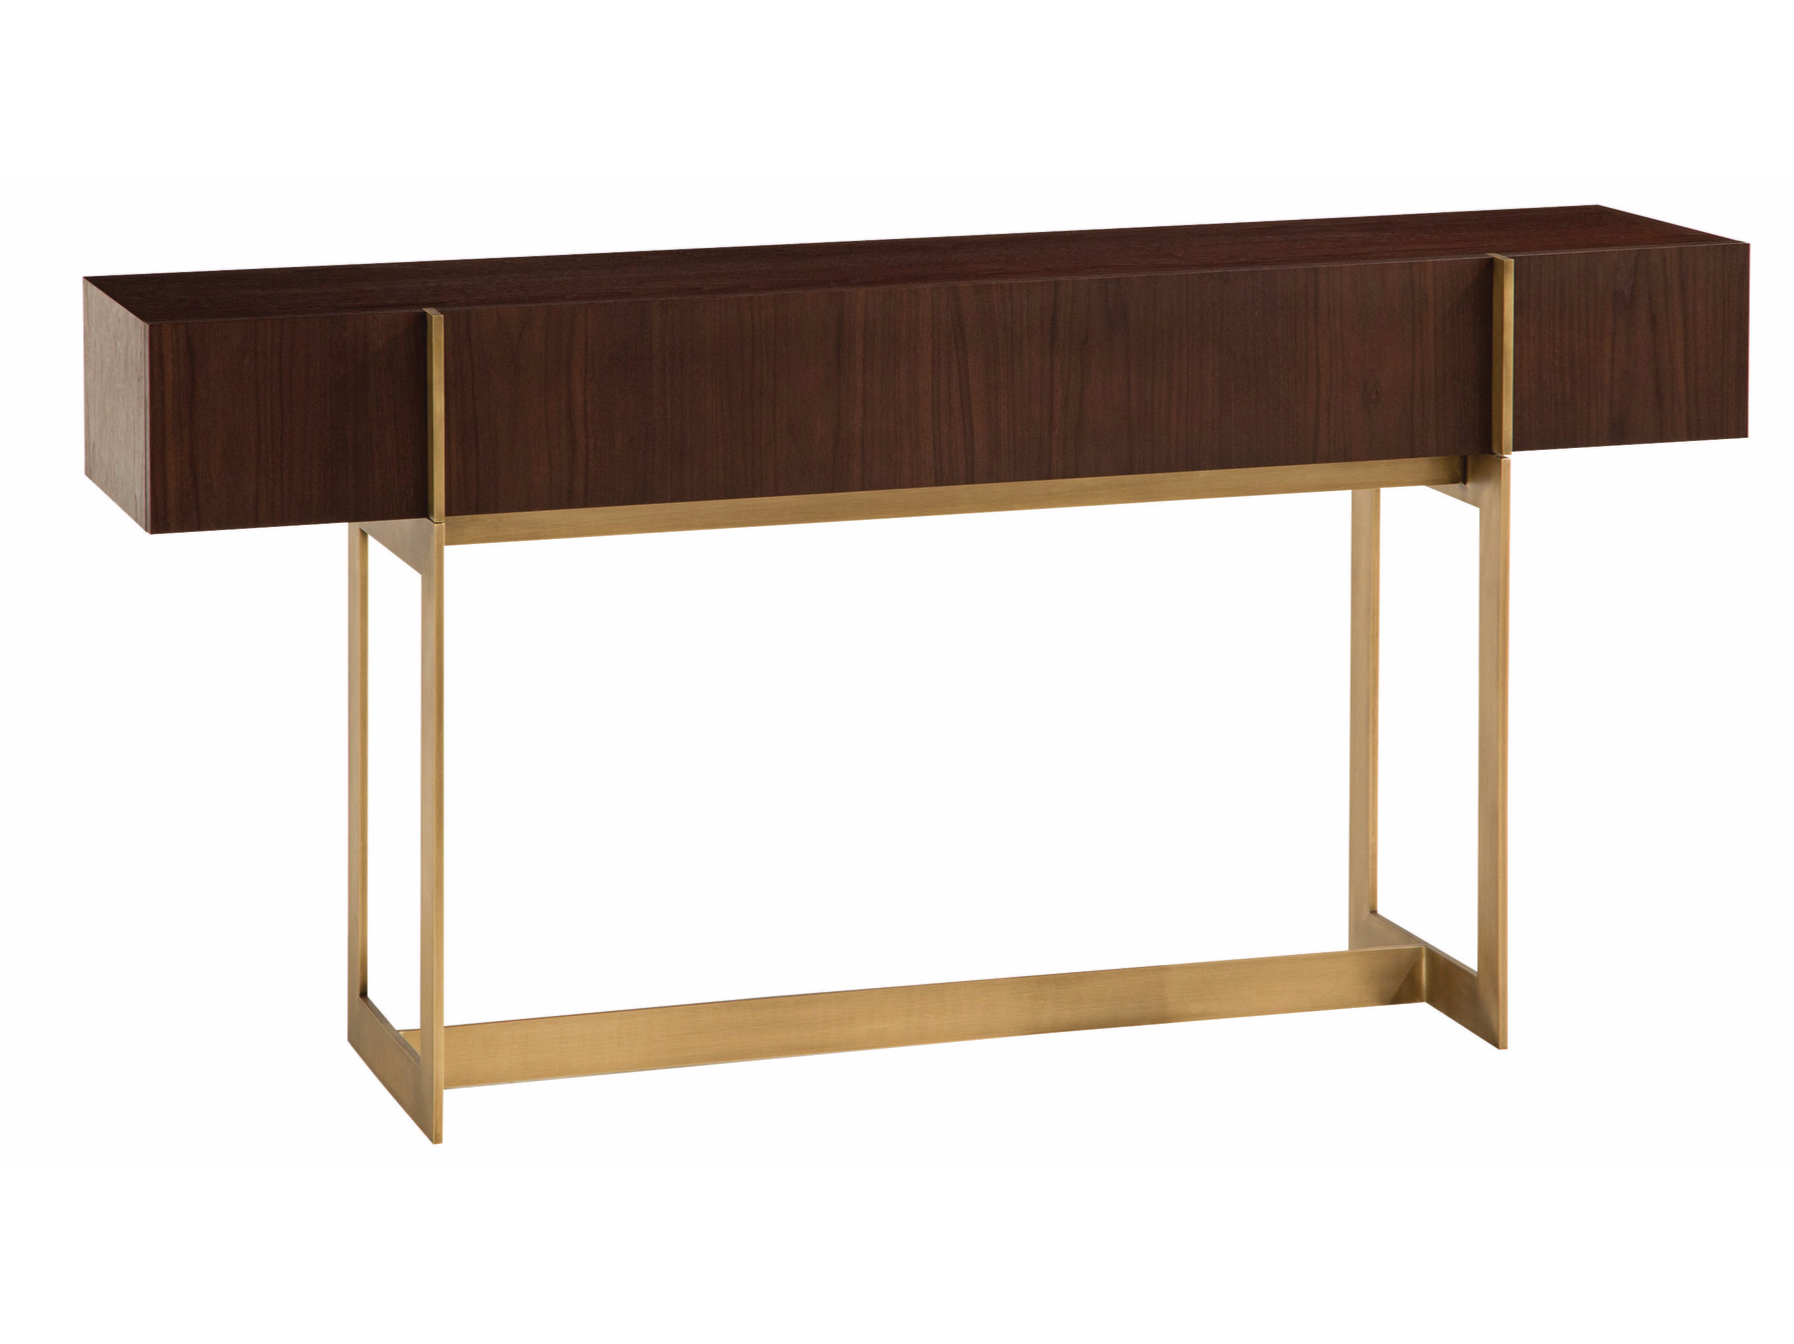 console-table-roche-bobois-263115-relc74d8815 Unique De Table Basse Plexiglas